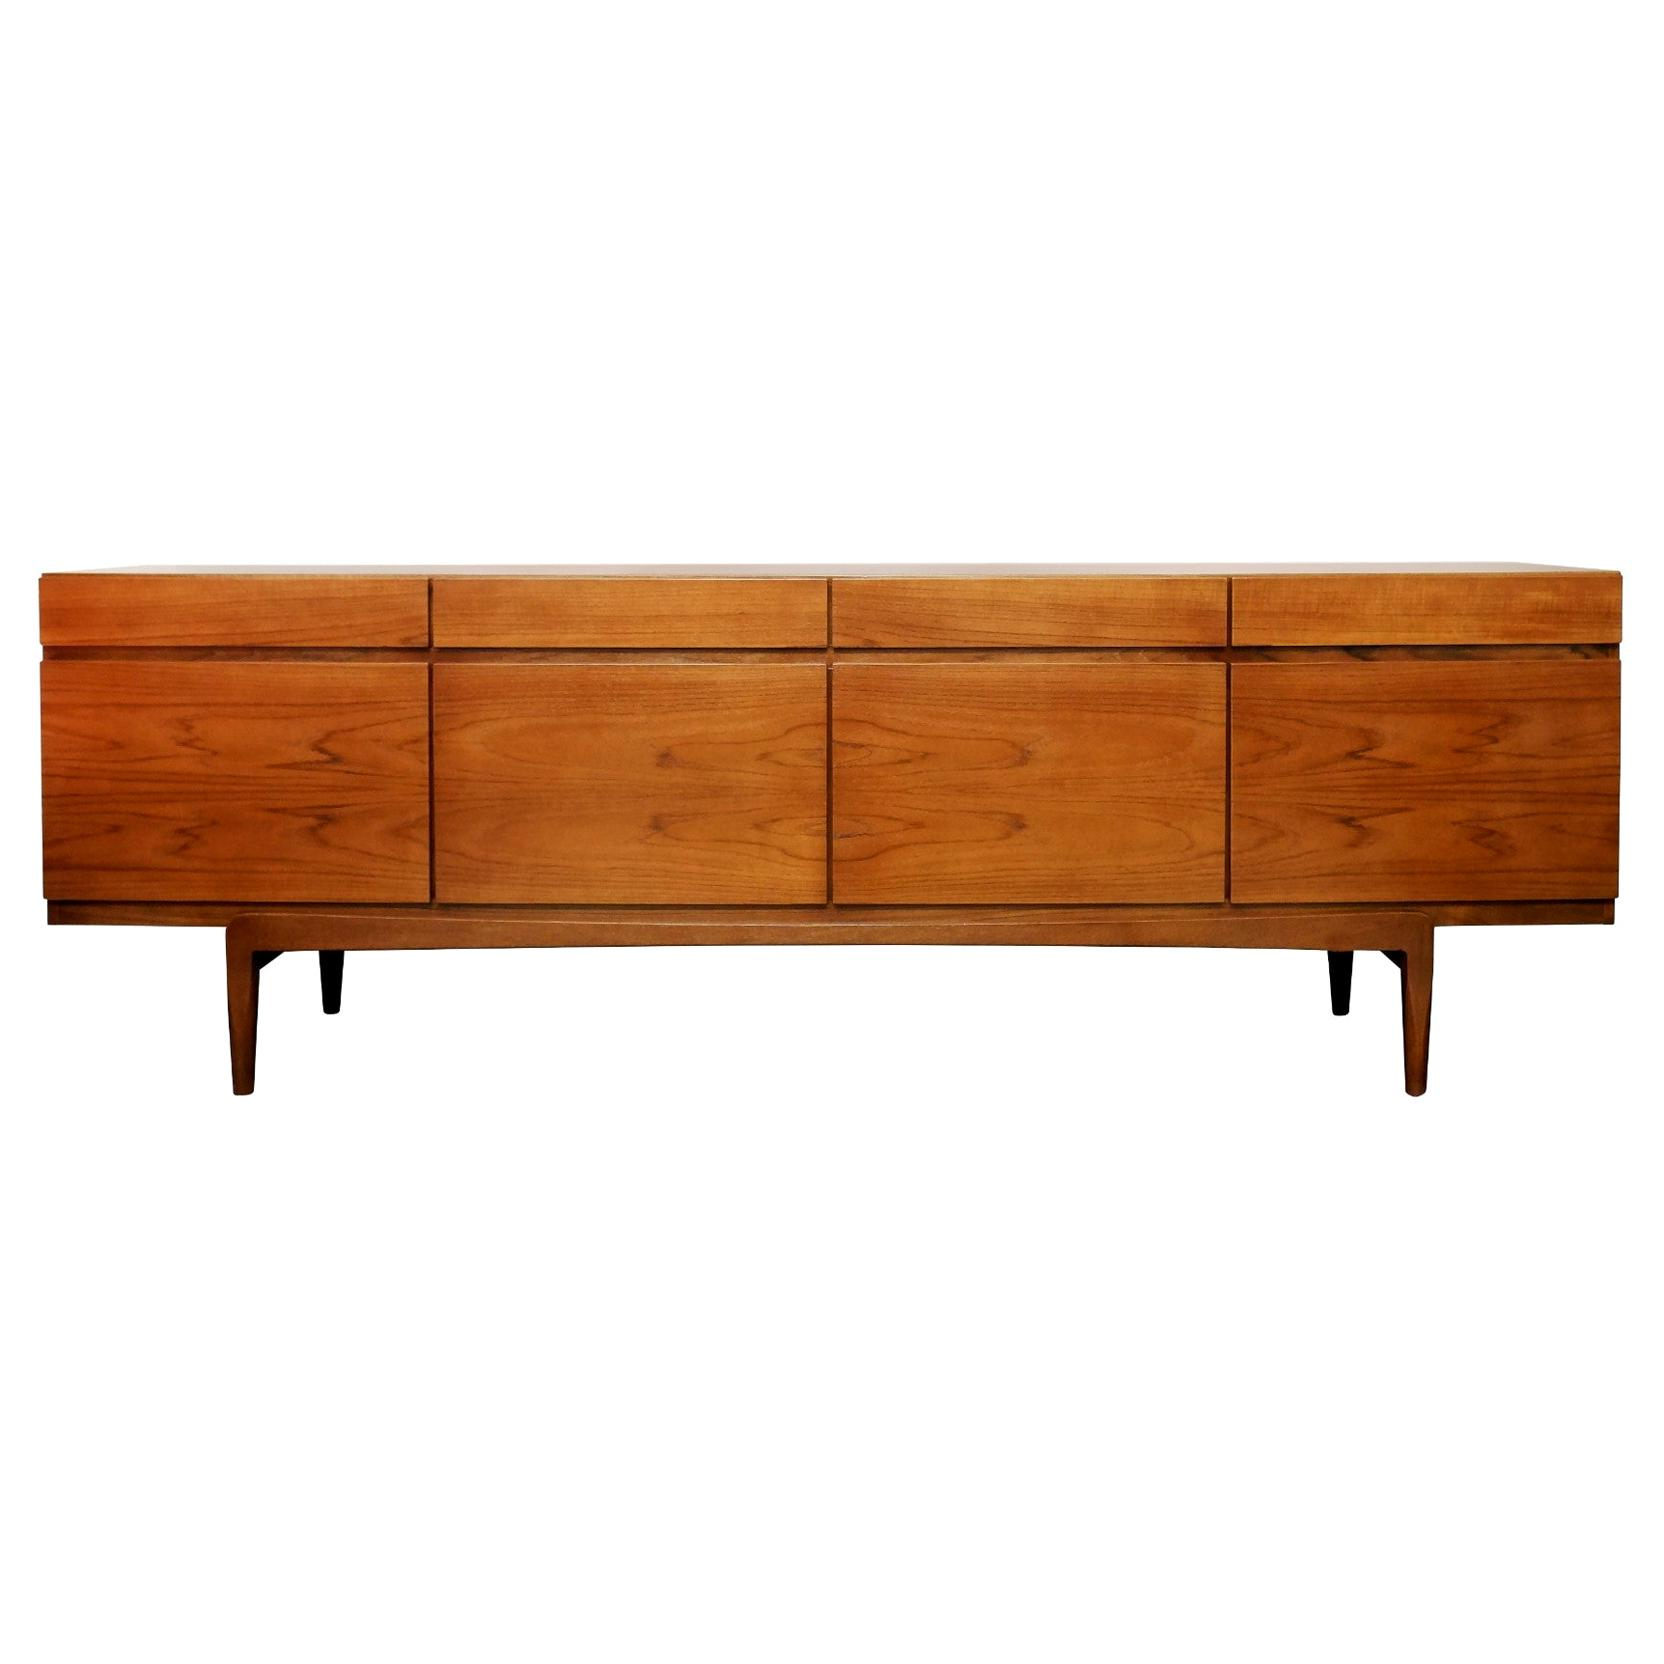 Watteeu Case Pieces And Storage Cabinets – 1Stdibs For Weinberger Sideboards (View 19 of 20)